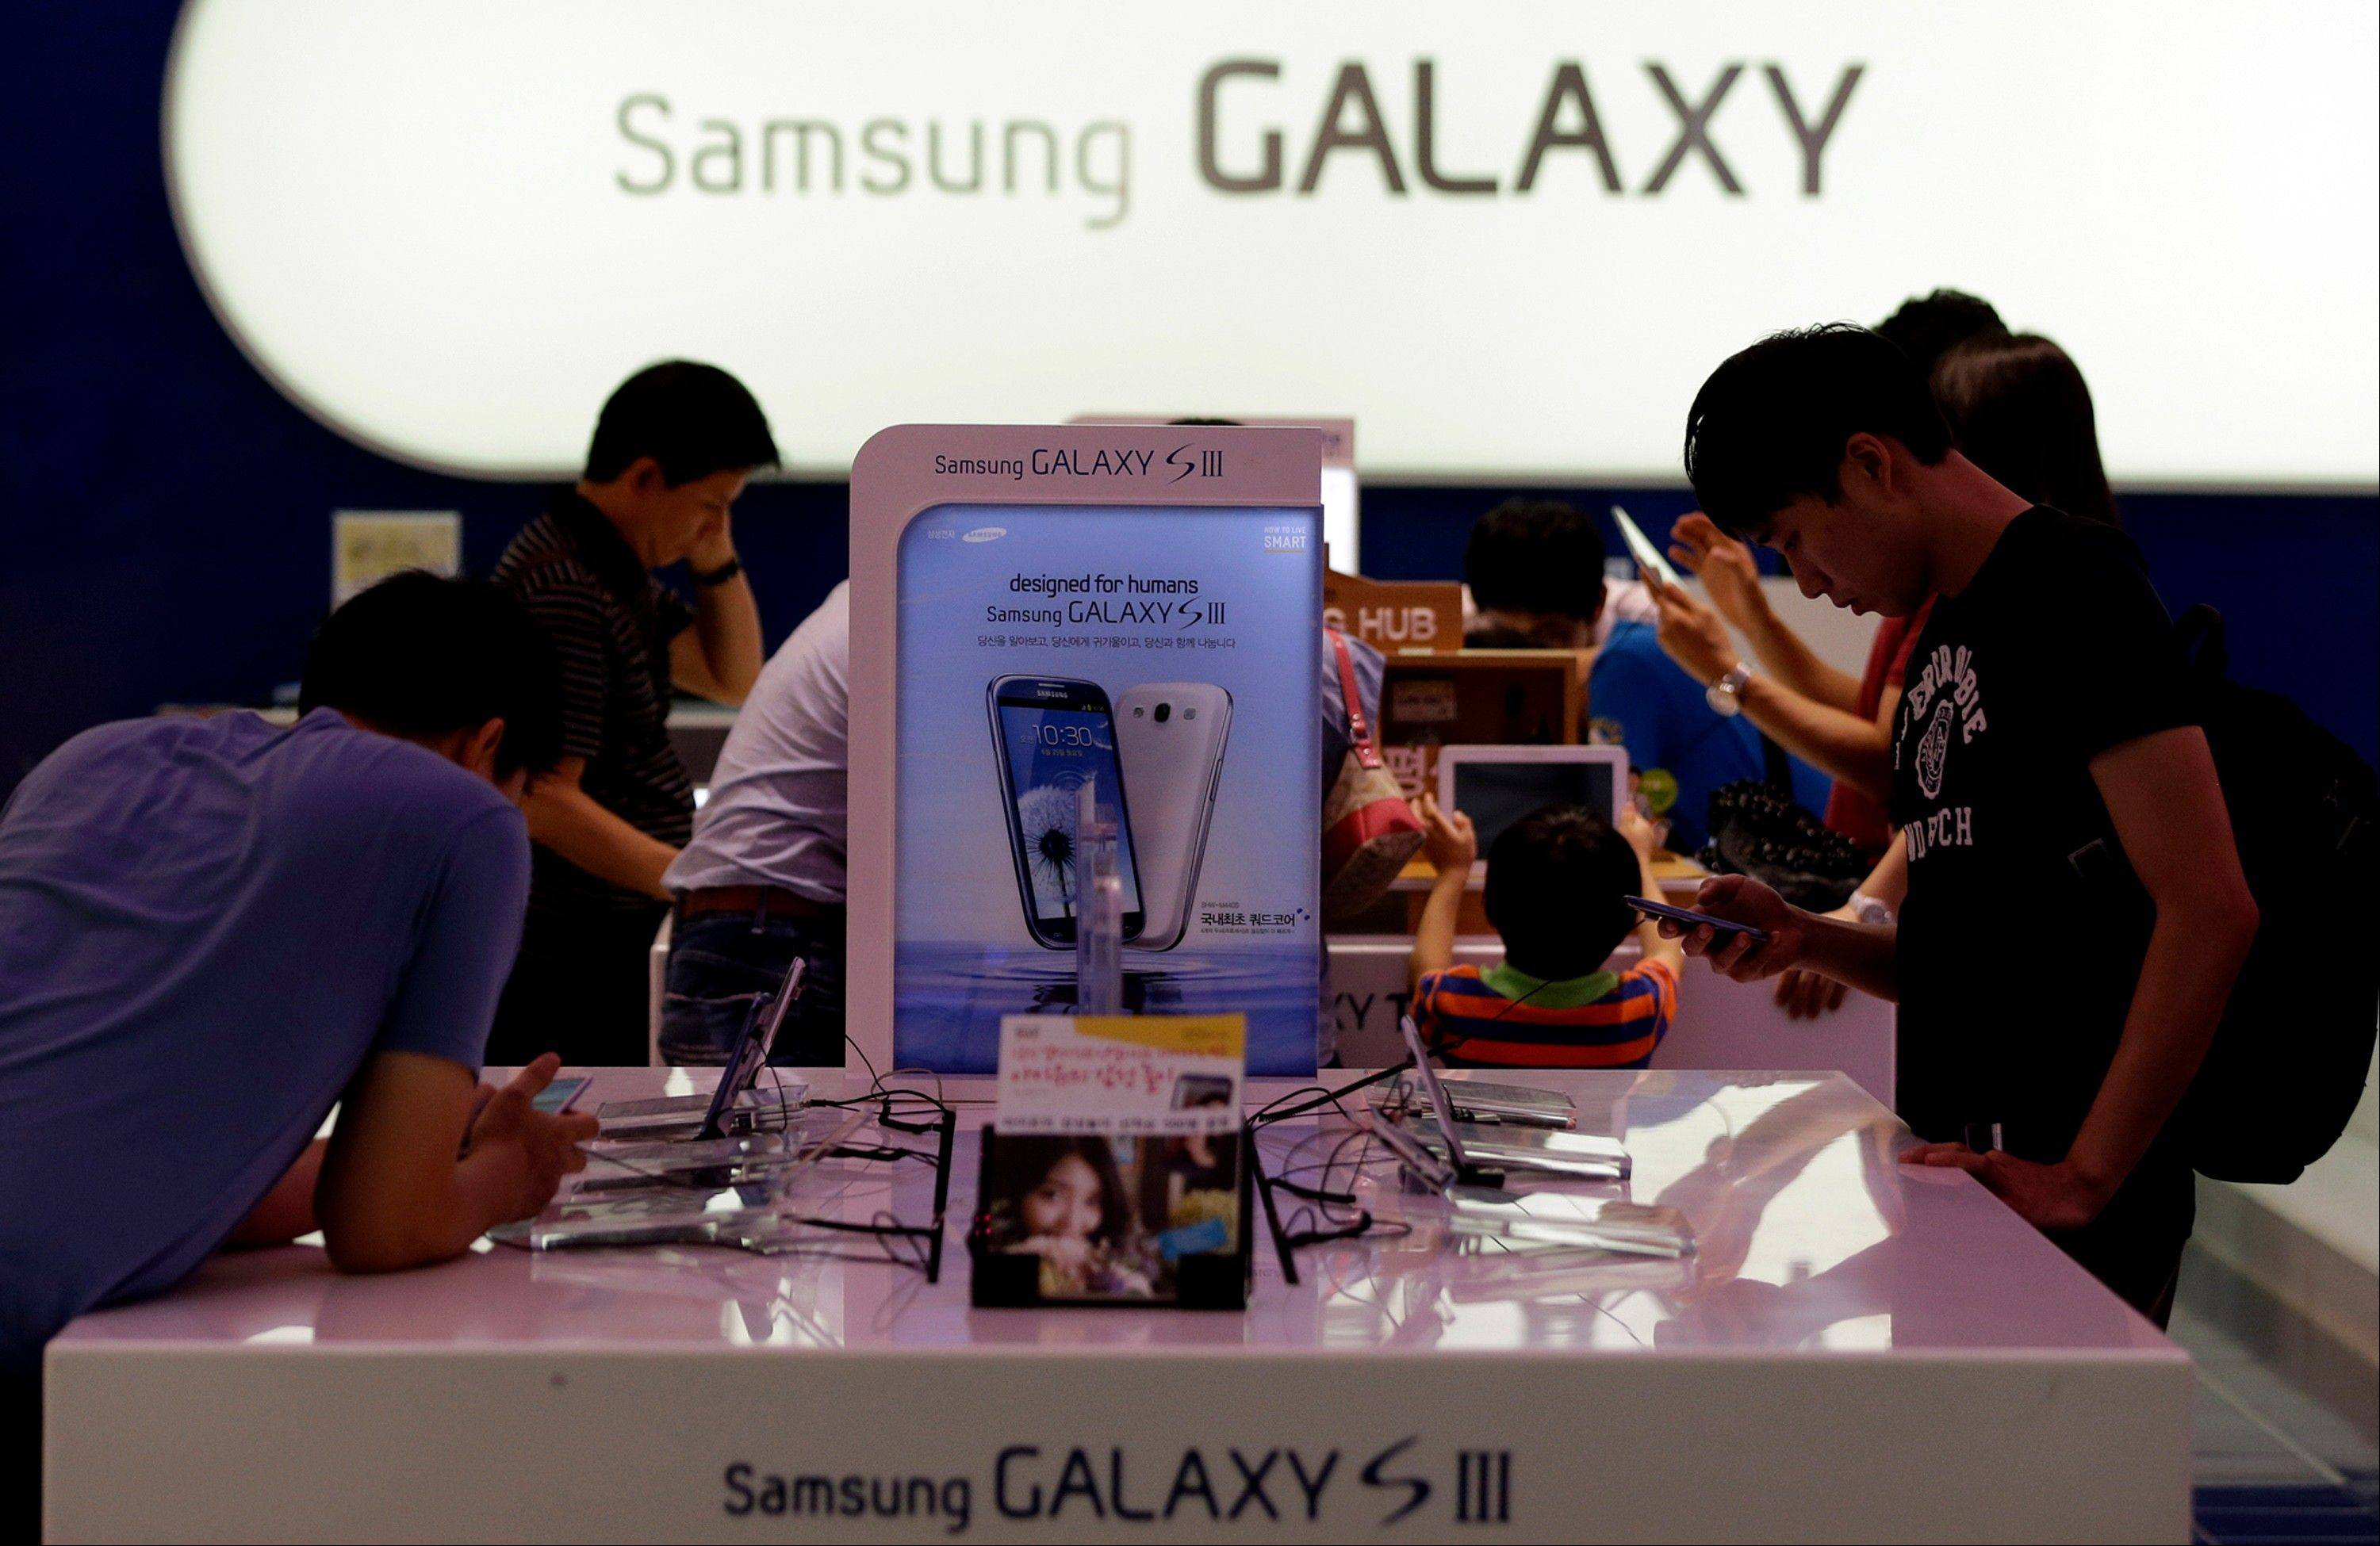 Visitors shop around Samsung�s smartphones at a shopping mall in Seoul, South Korea, Saturday, Aug. 25, 2012. The South Korean phone maker won a home court ruling Friday in its global patent battle against Apple and its popular iPhone and iPad devices. The ruling came hours before Apple prevailed in a similar case in the U.S. Judges in Seoul said Samsung Electronics Co. didn�t copy the look and feel of the iPhone and ruled that Apple infringed on Samsung�s wireless technology.